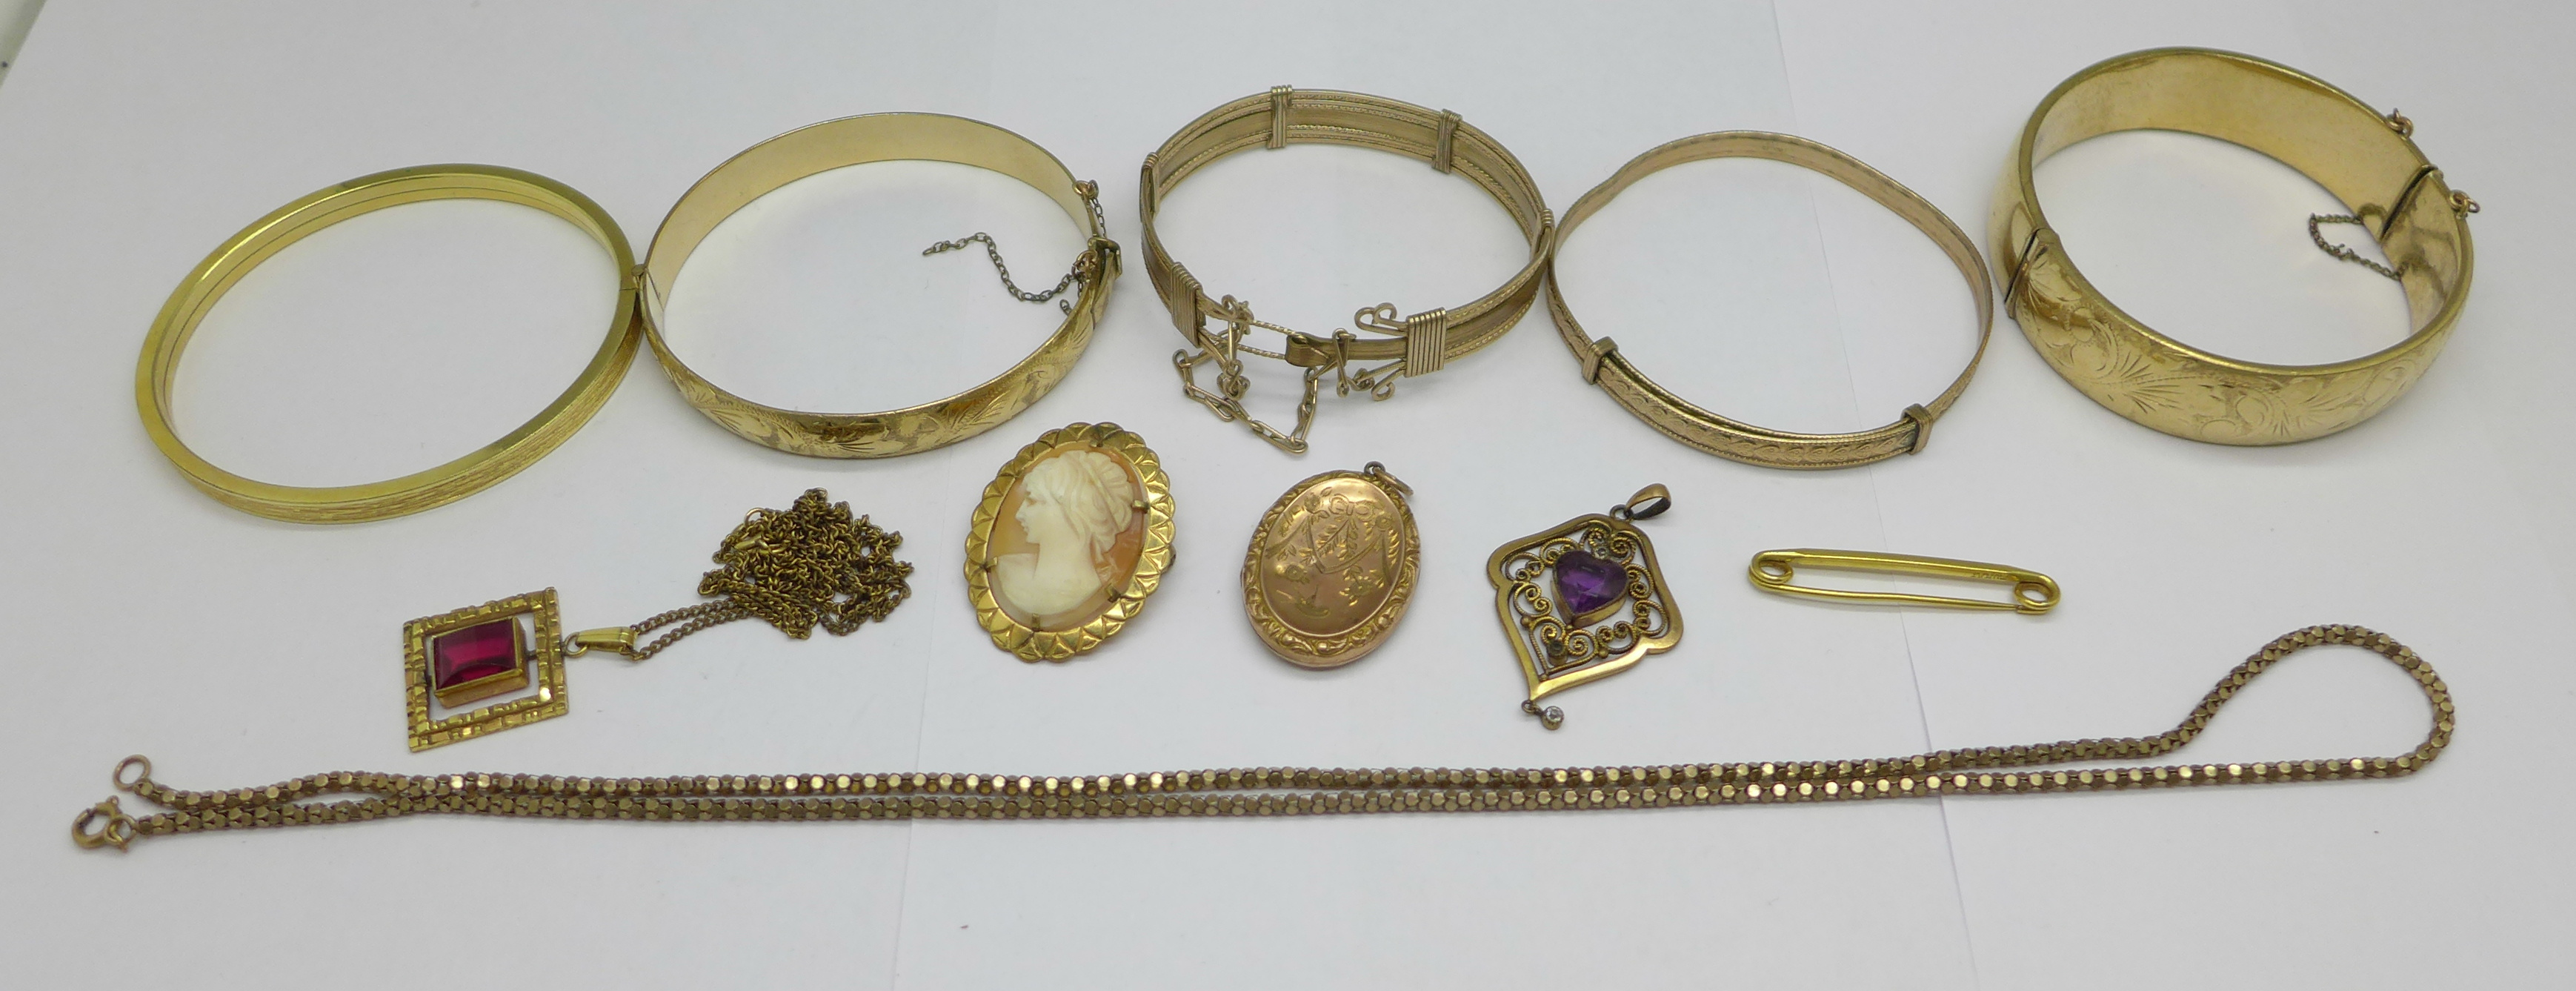 Plated jewellery including five bangles and a 9ct back & front locket